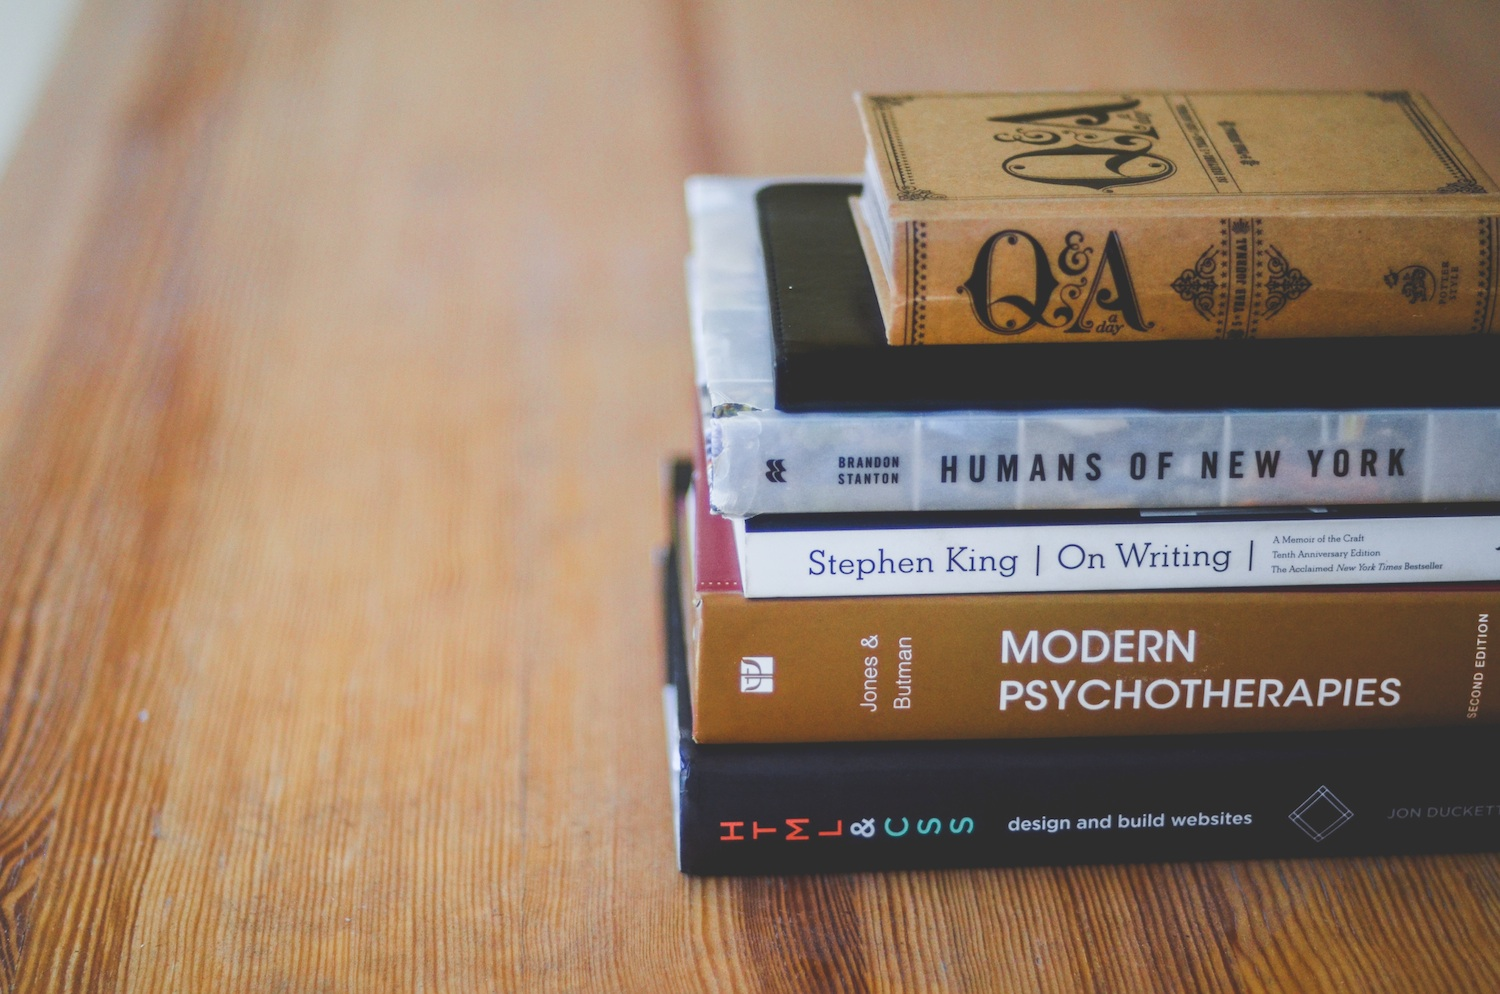 New to Blogging? Ditch the Fear of Judgement | ProBlogger